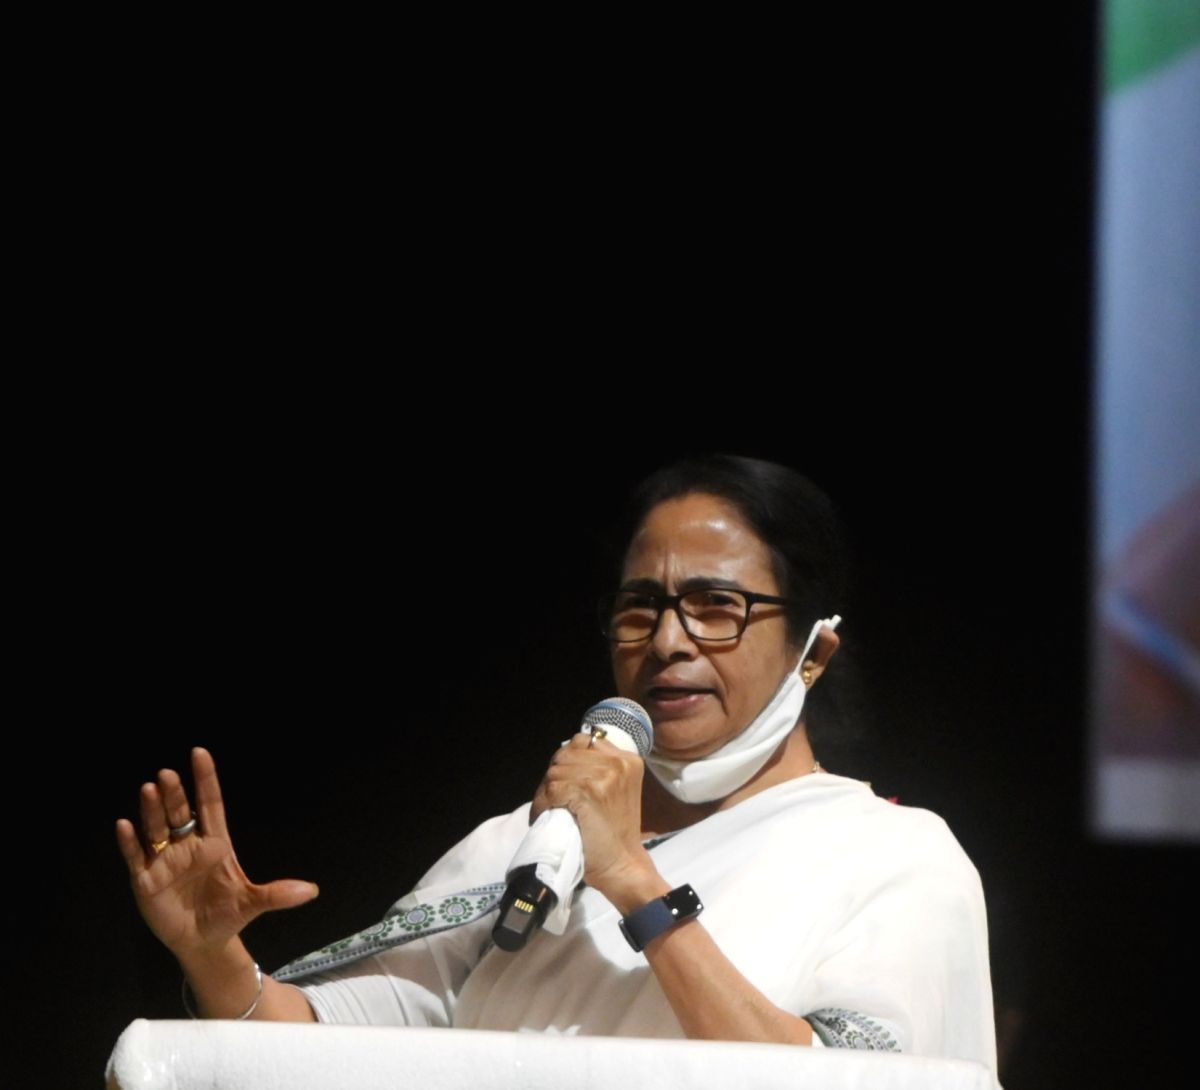 Kolkata: TMC candidate and West Bengal Chief Minister Mamata Banerjee during the first day of her campaign for upcoming Bhawnipur by-election in Kolkata on Wednesday, September 08, 2021. (Photo: Kuntal Chakrabarty/ IANS)